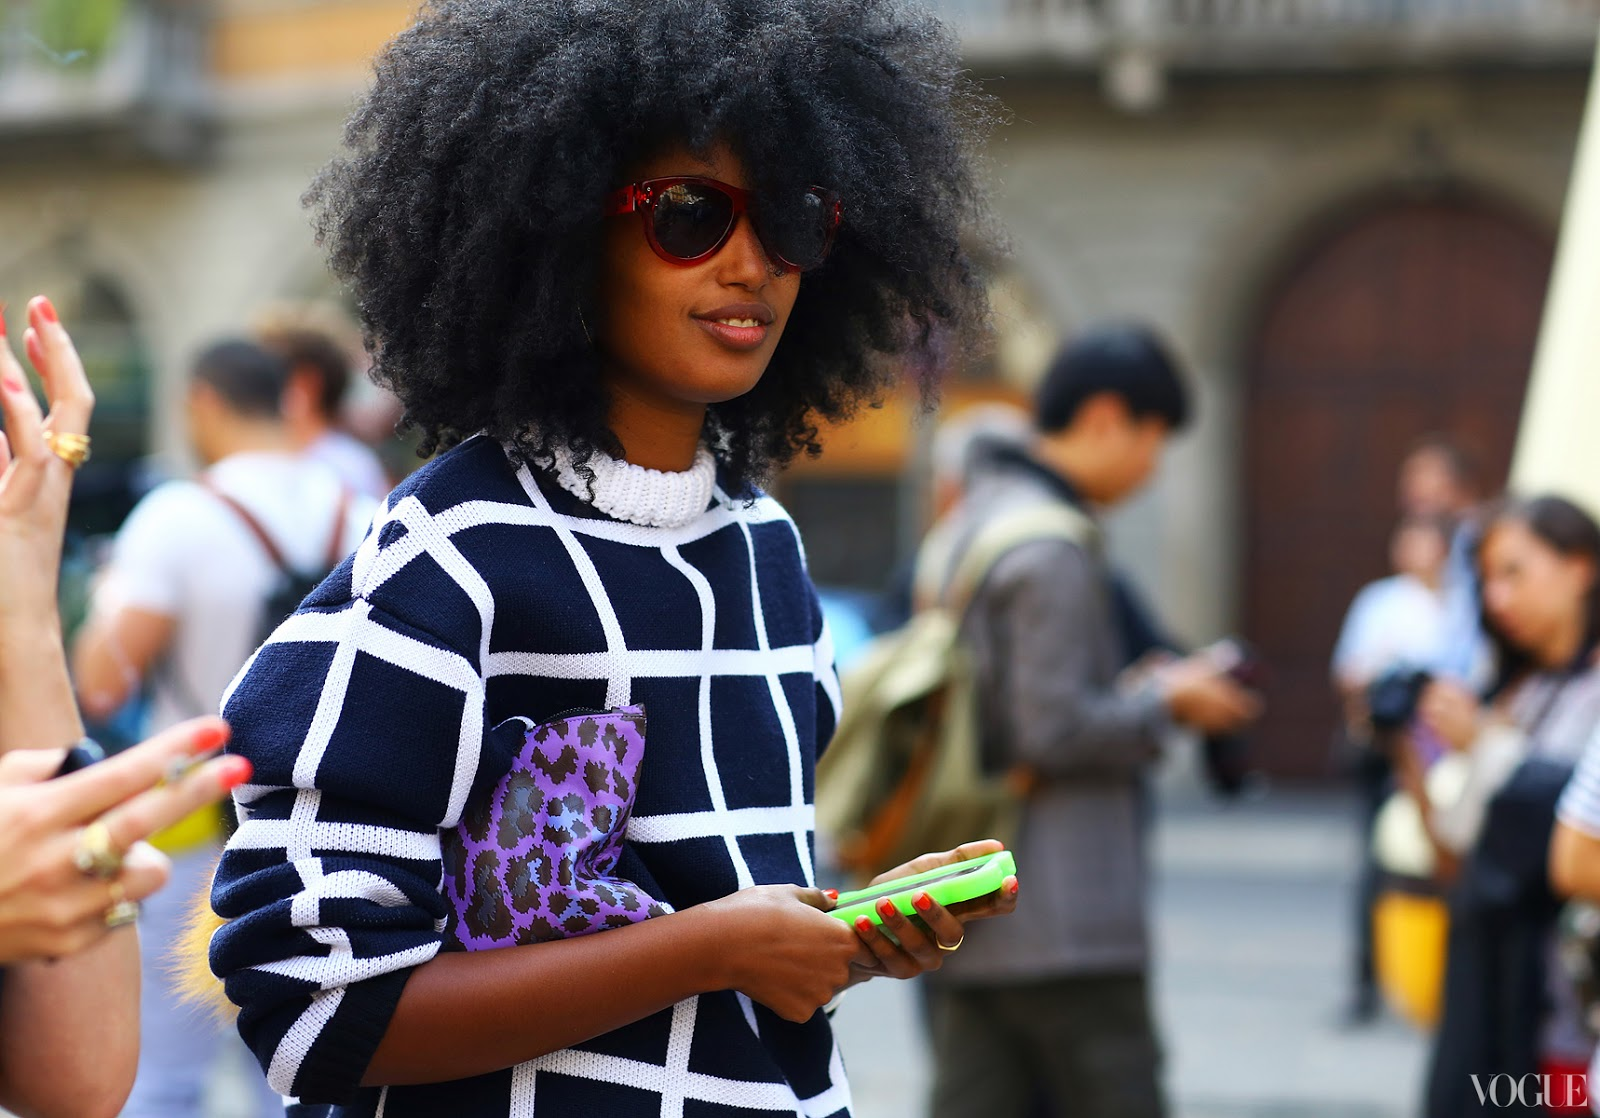 milan-fashion-week-streetstyle-julia-sarr-jamois-jw-anderson-sweater